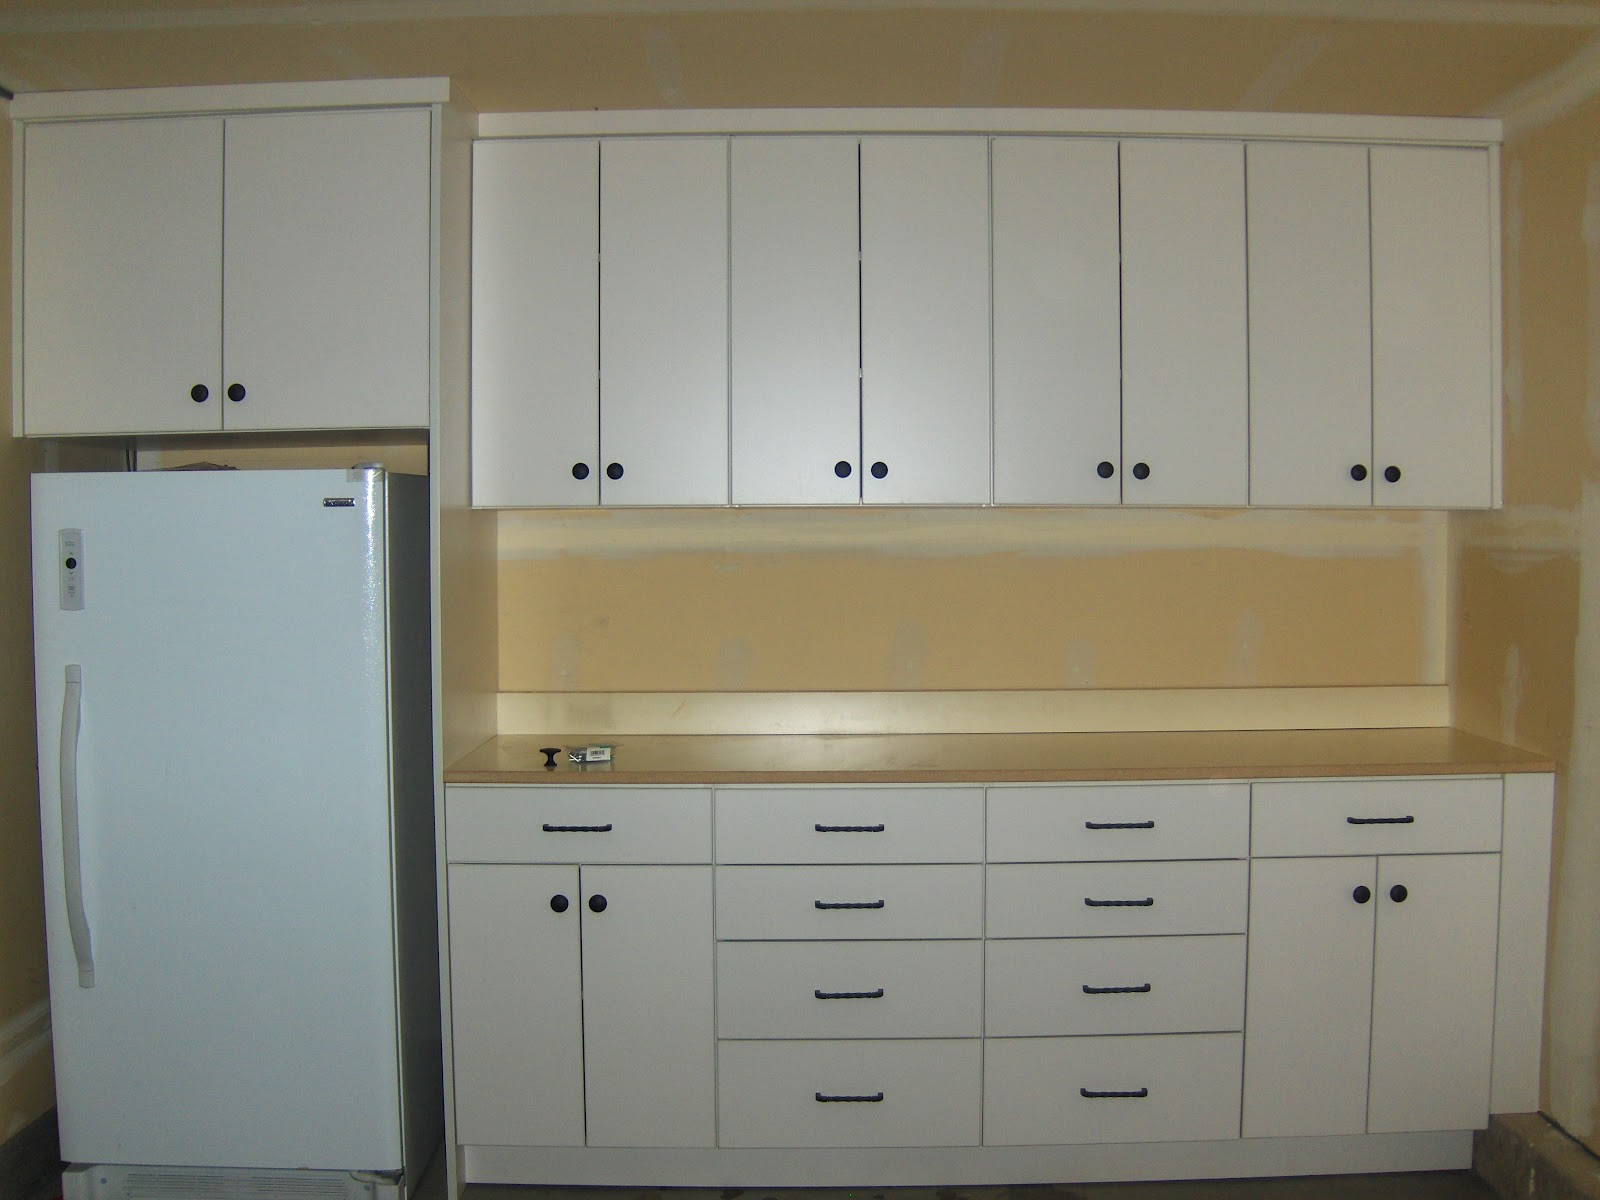 Stone Ridge Cabinets: Garage Cabinets with workbench and freezer space